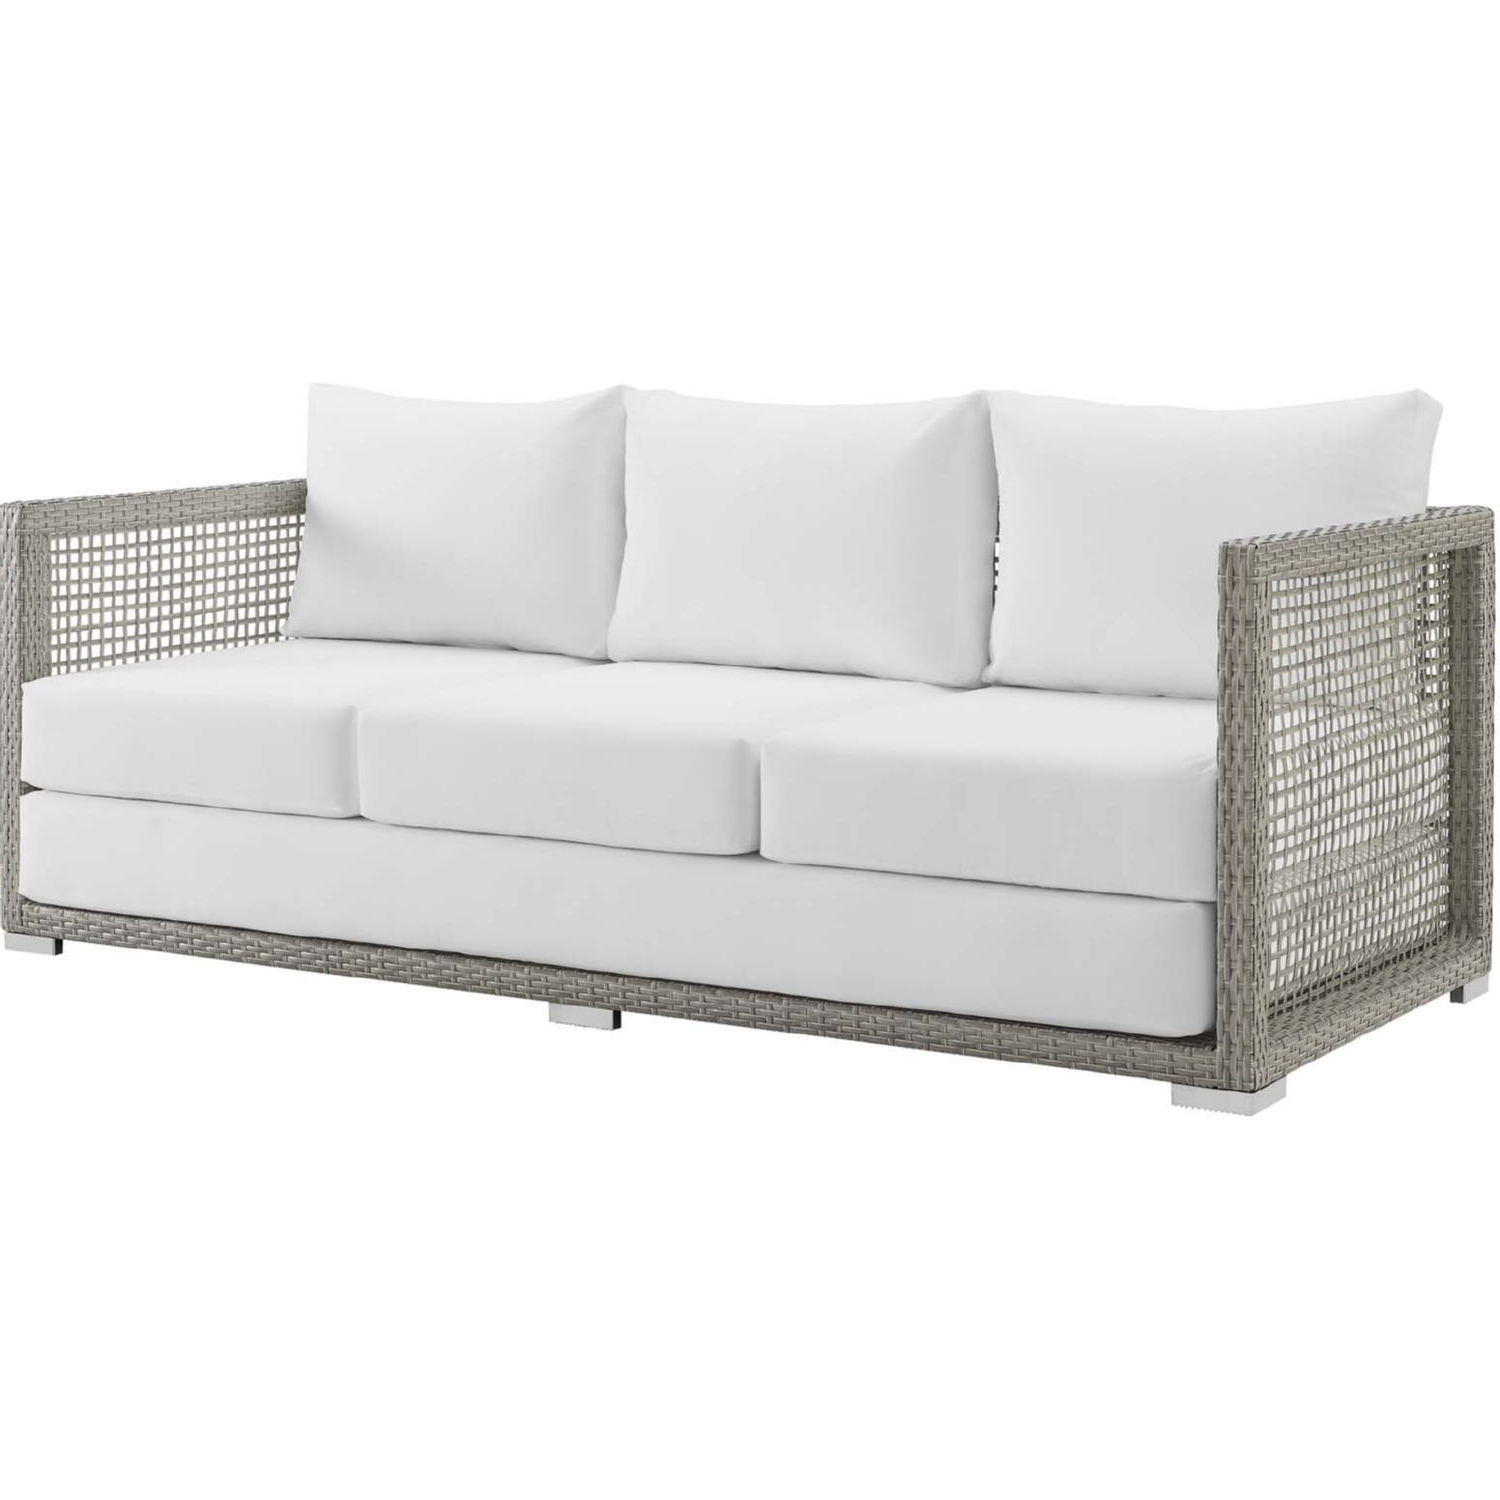 Modway Aura Outdoor Gray Wicker Rattan Sofa White Fabric With Famous Baca Patio Sofas With Cushions (View 16 of 25)